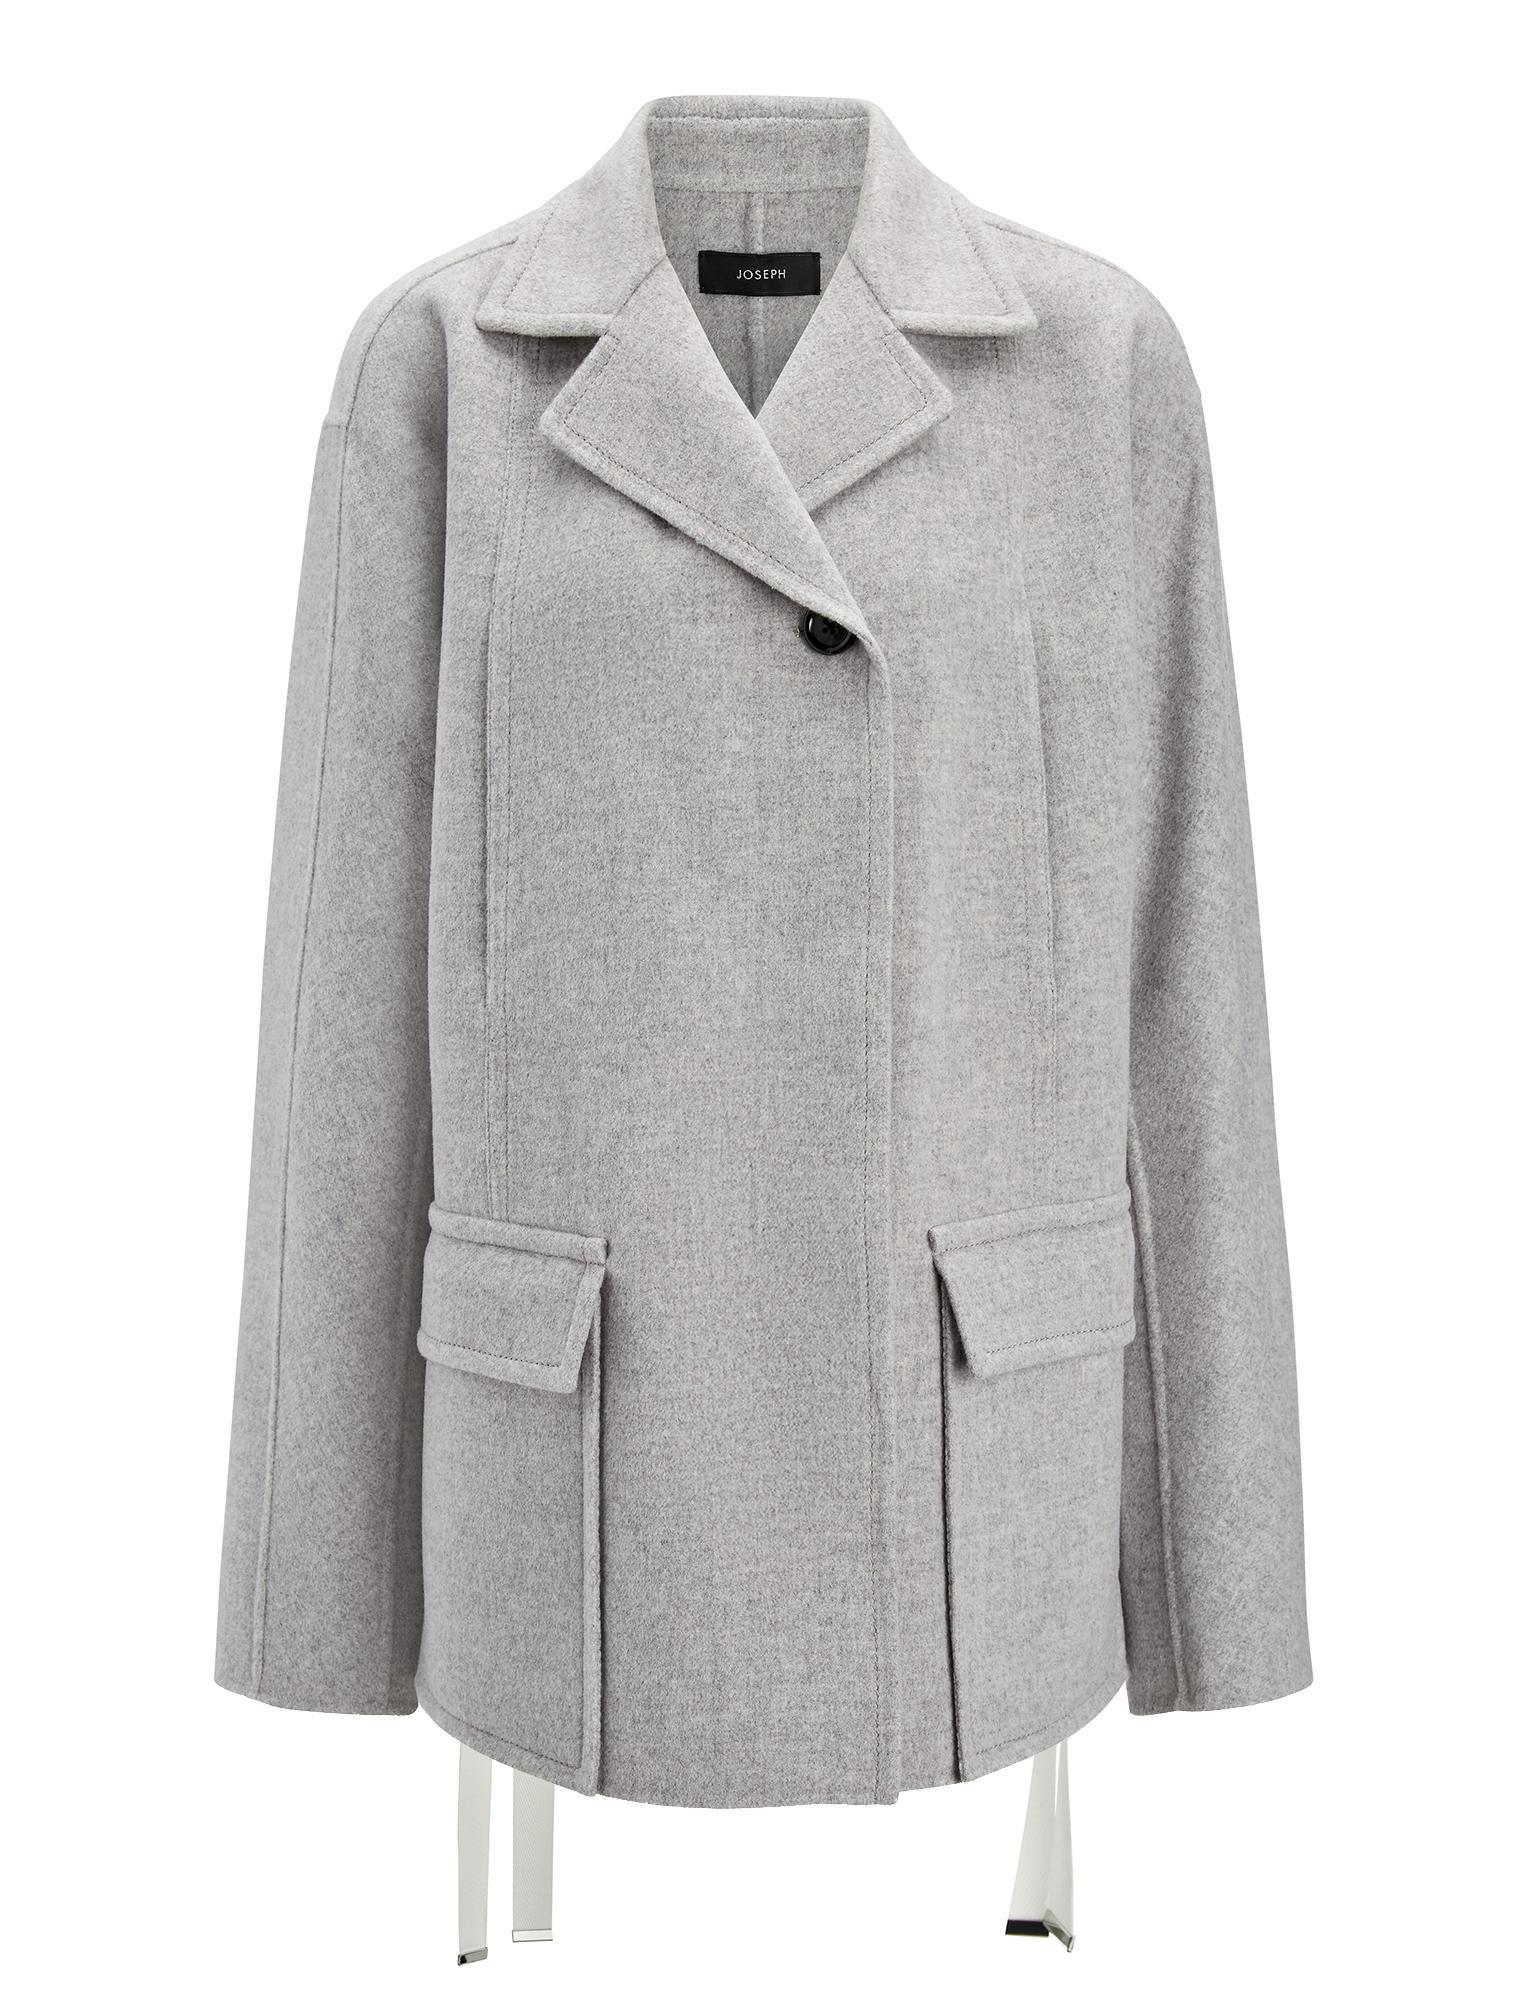 Lyst - Joseph Double Wool Caplan Short Coat in Gray